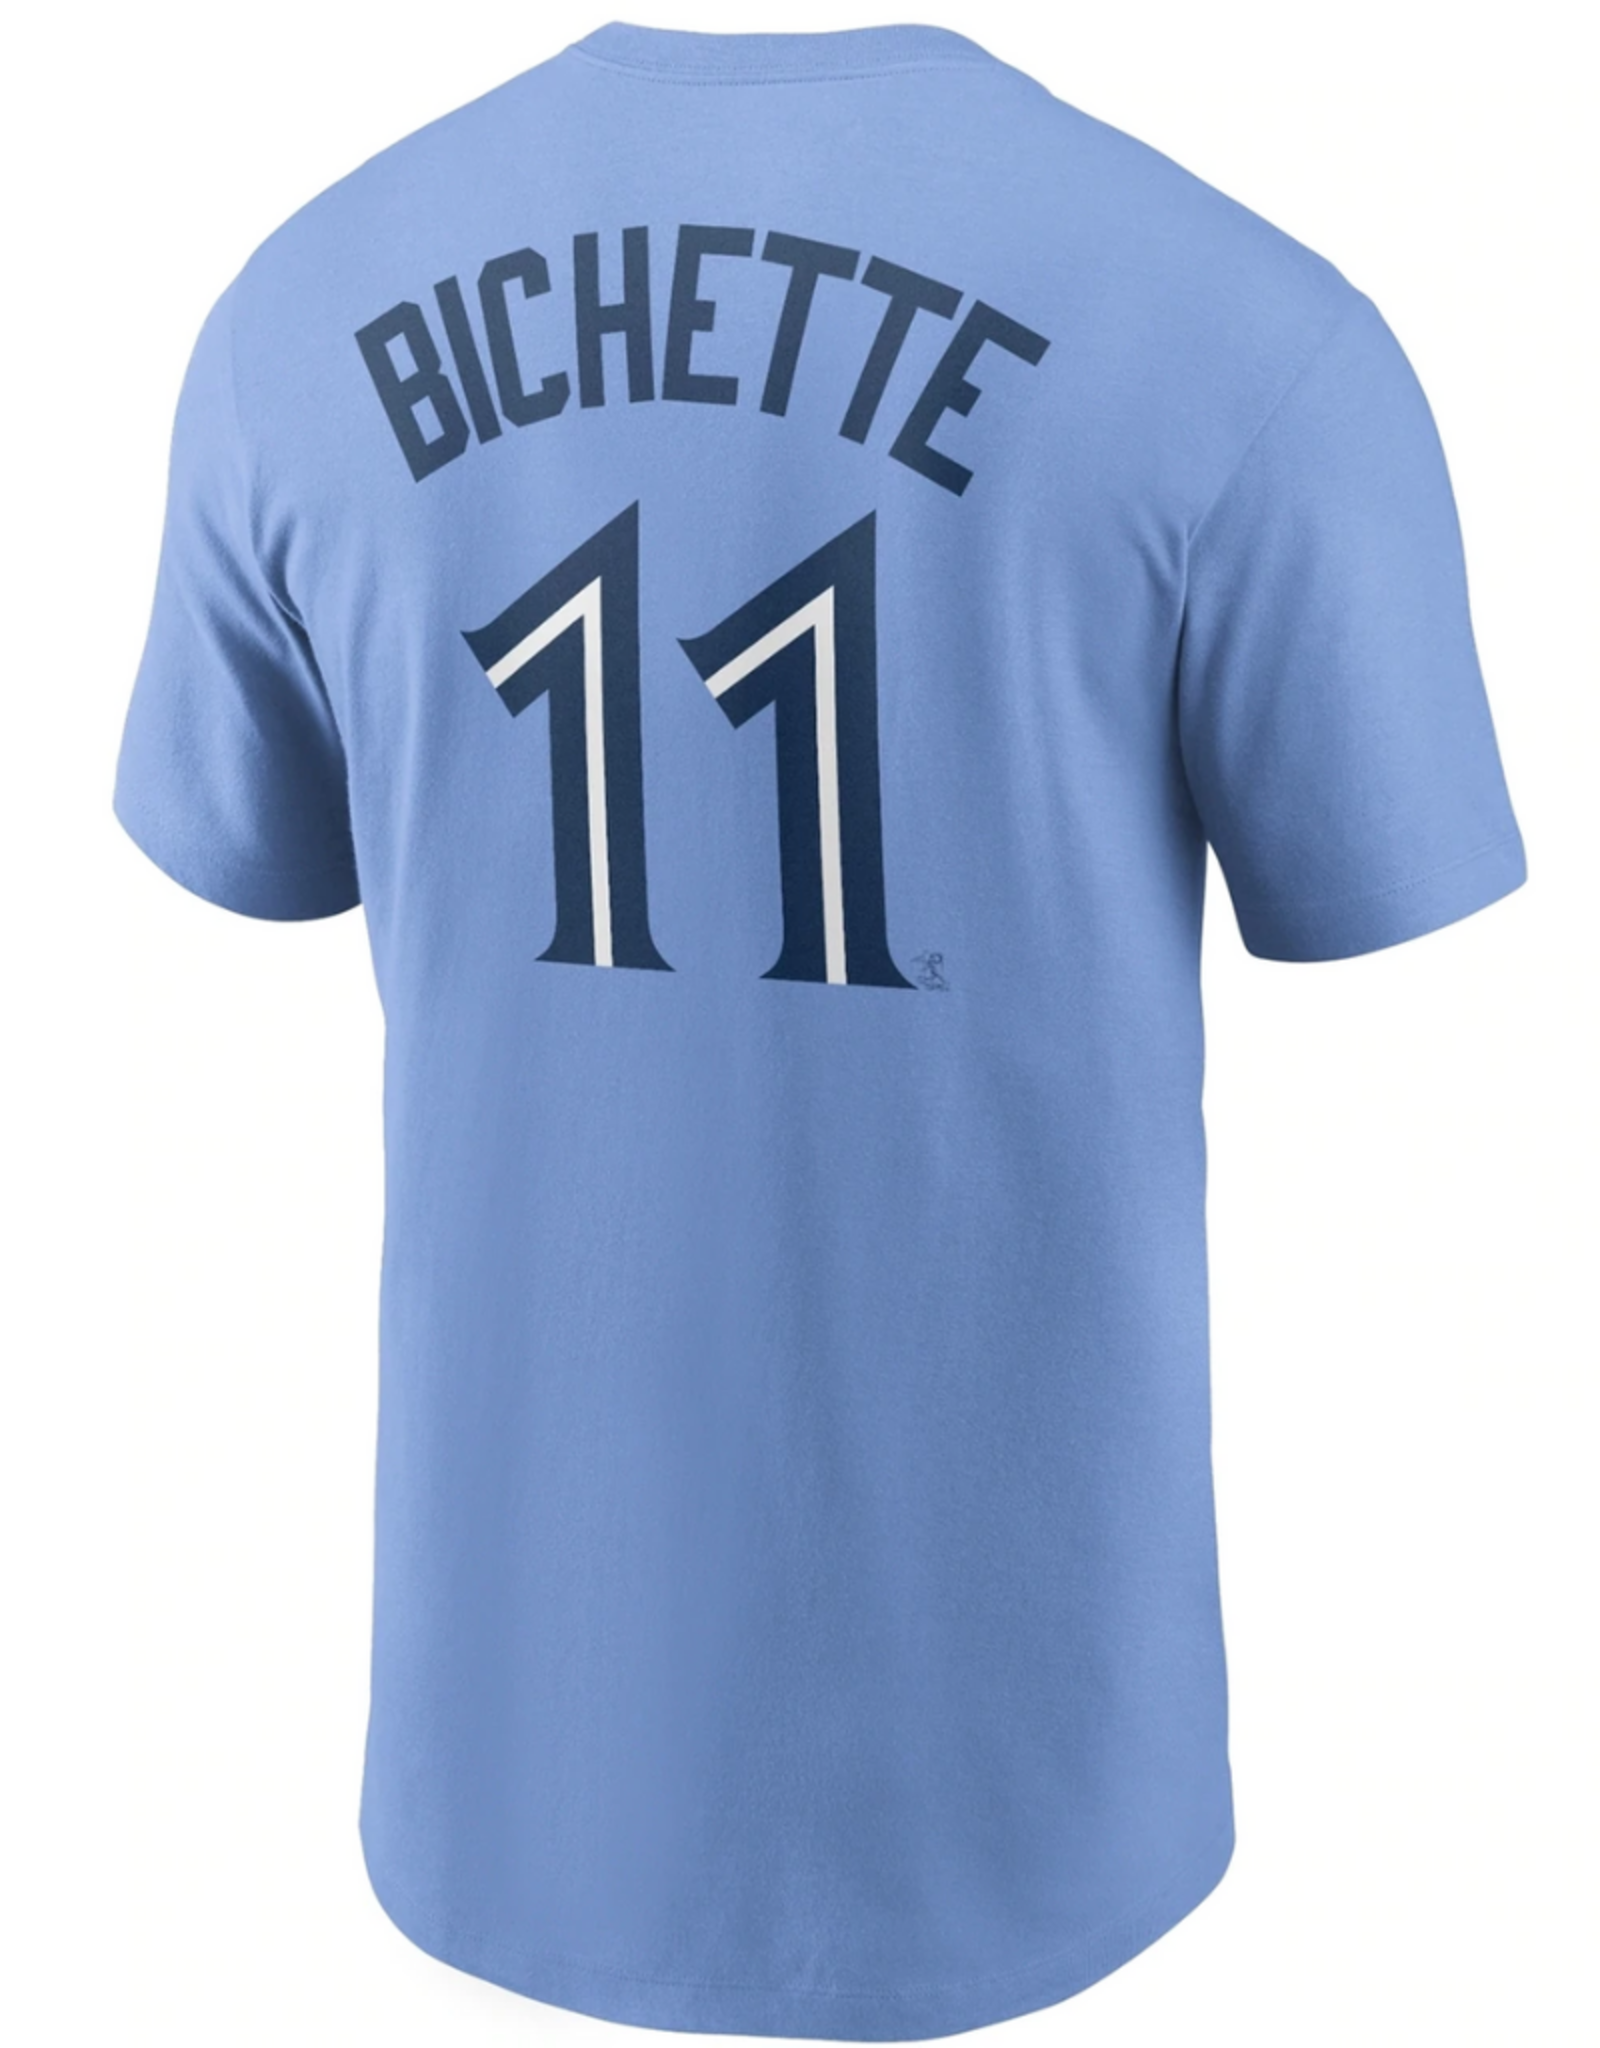 Nike Men's Player T-Shirt Bichette #11 Toronto Blue Jays Valor Blue